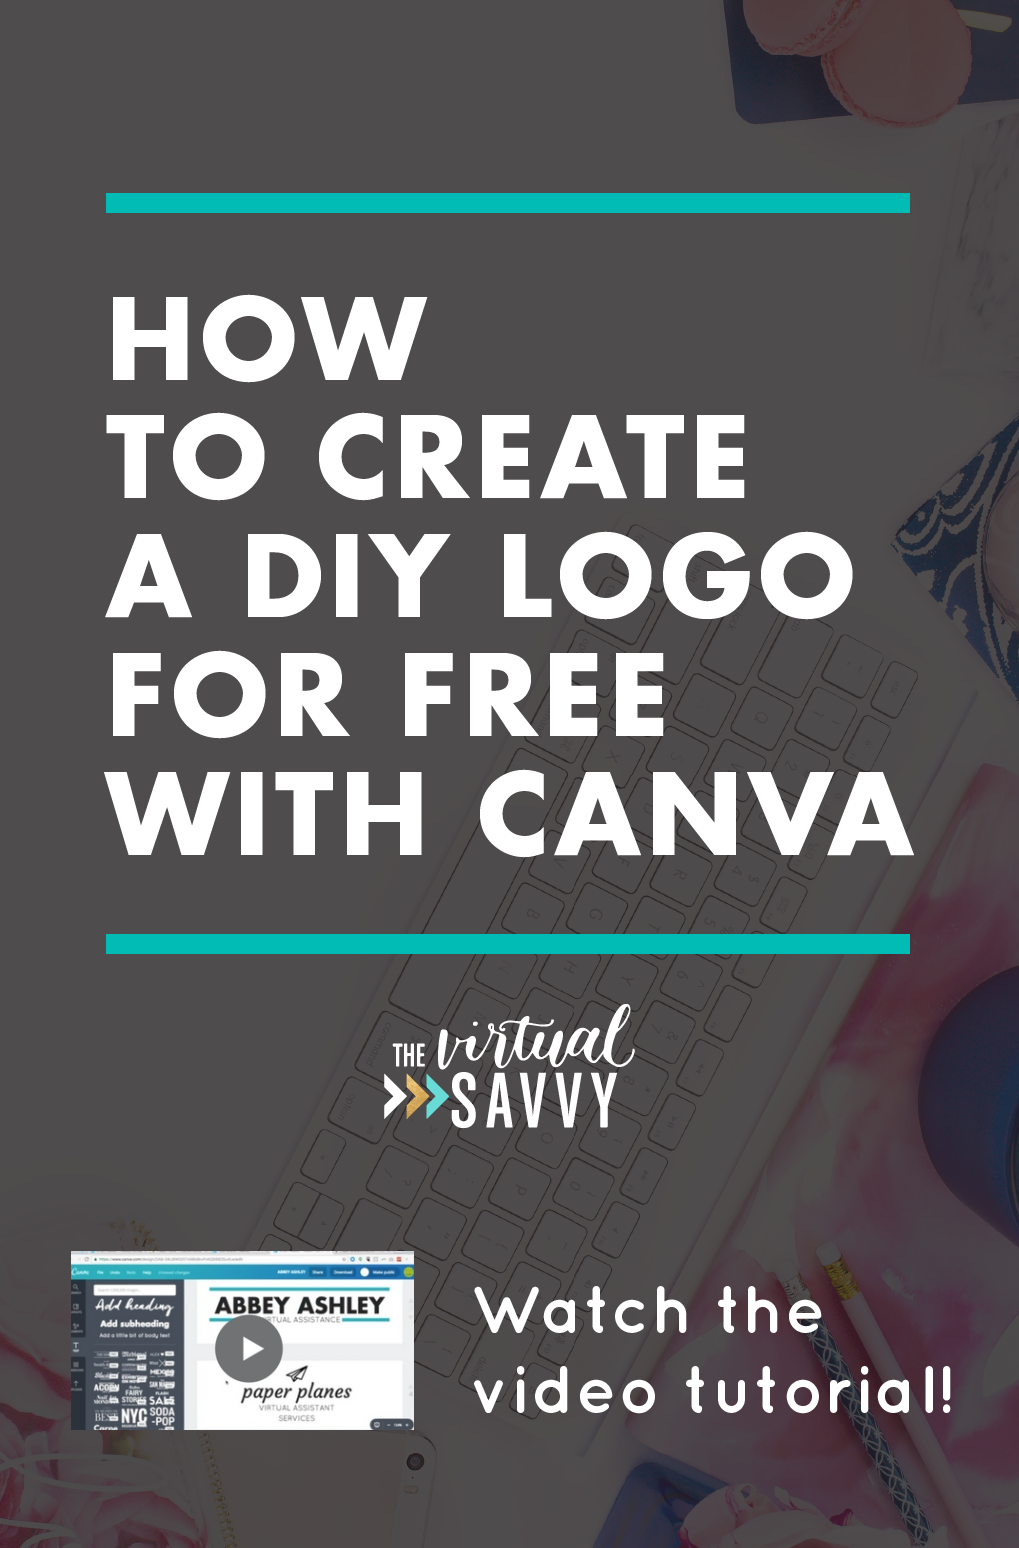 Want to create a logo for free? Click to learn how to